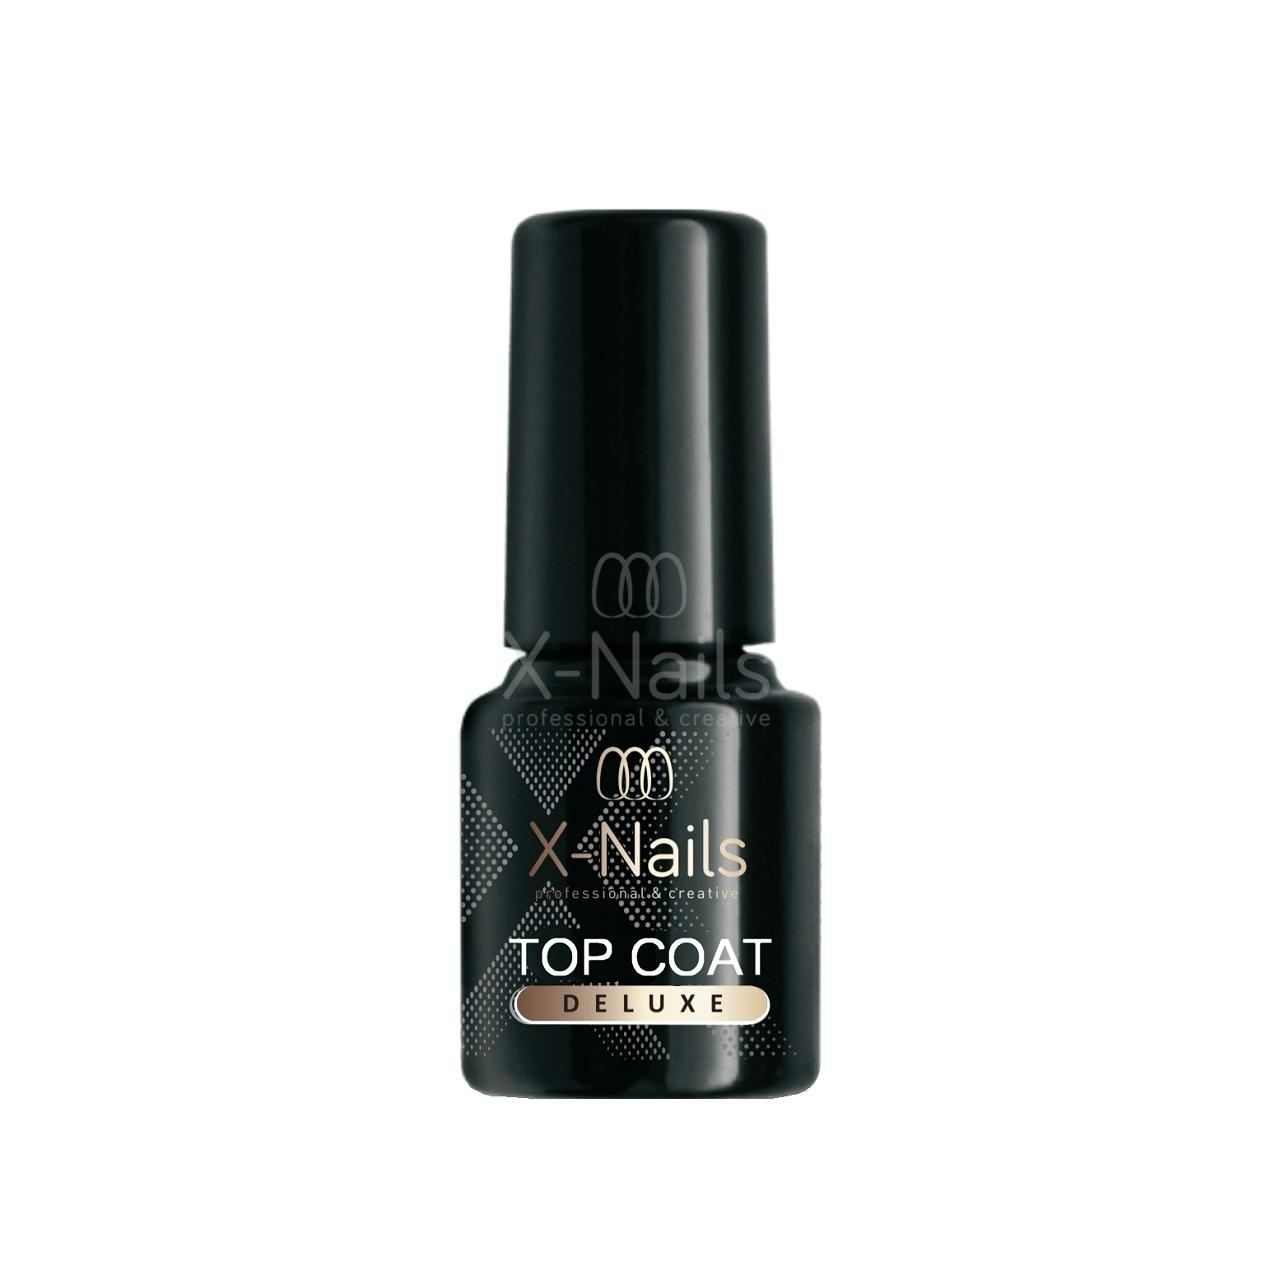 Profesionalni Zaverecny Lesk Nadlak Top Coat Deluxe X Nails